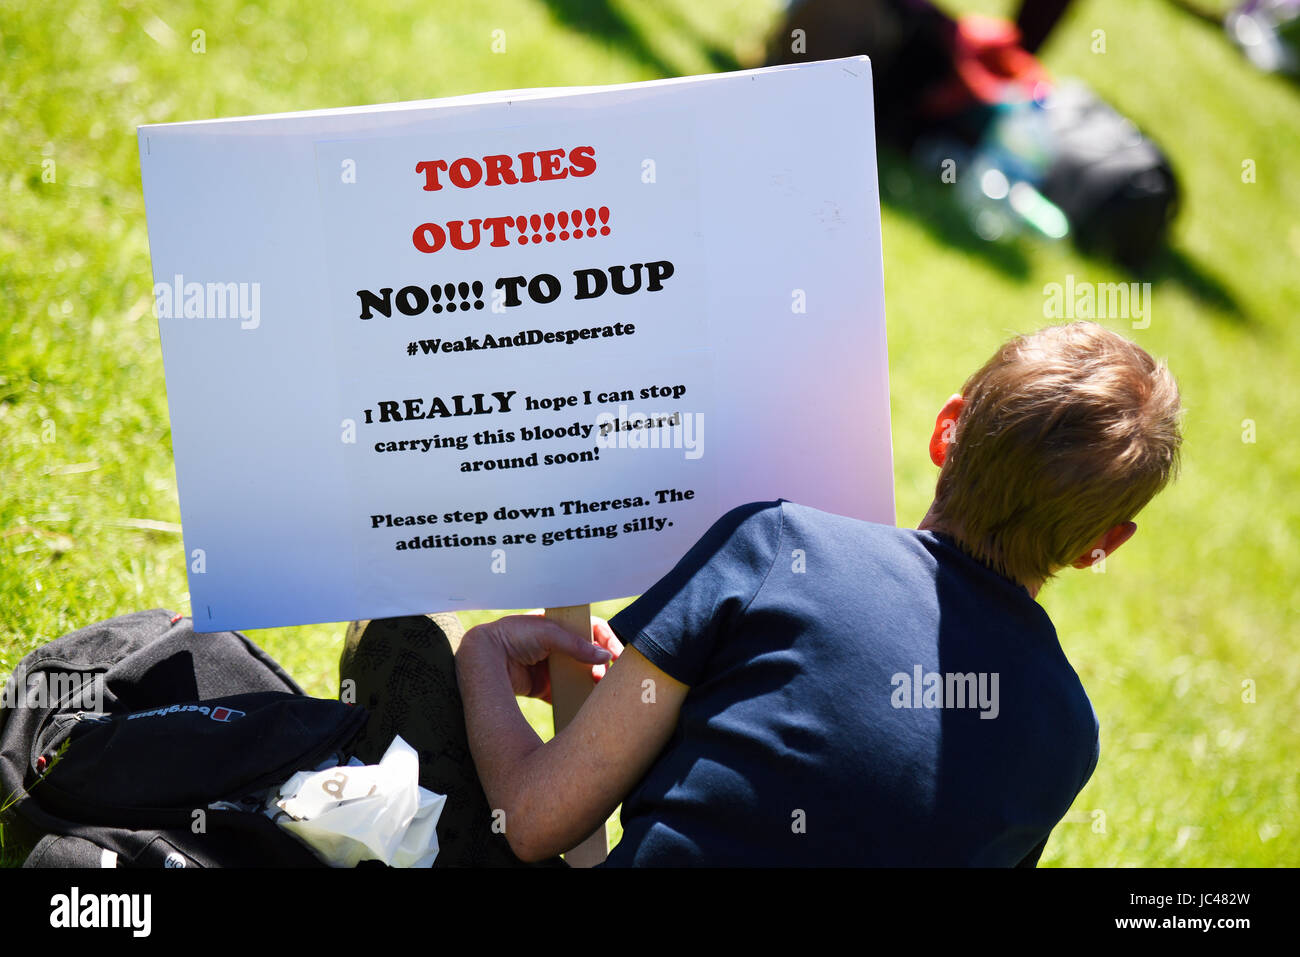 Demonstrators against the Tory DUP alliance gathered in Parliament Square and marched on Downing Street. London. - Stock Image